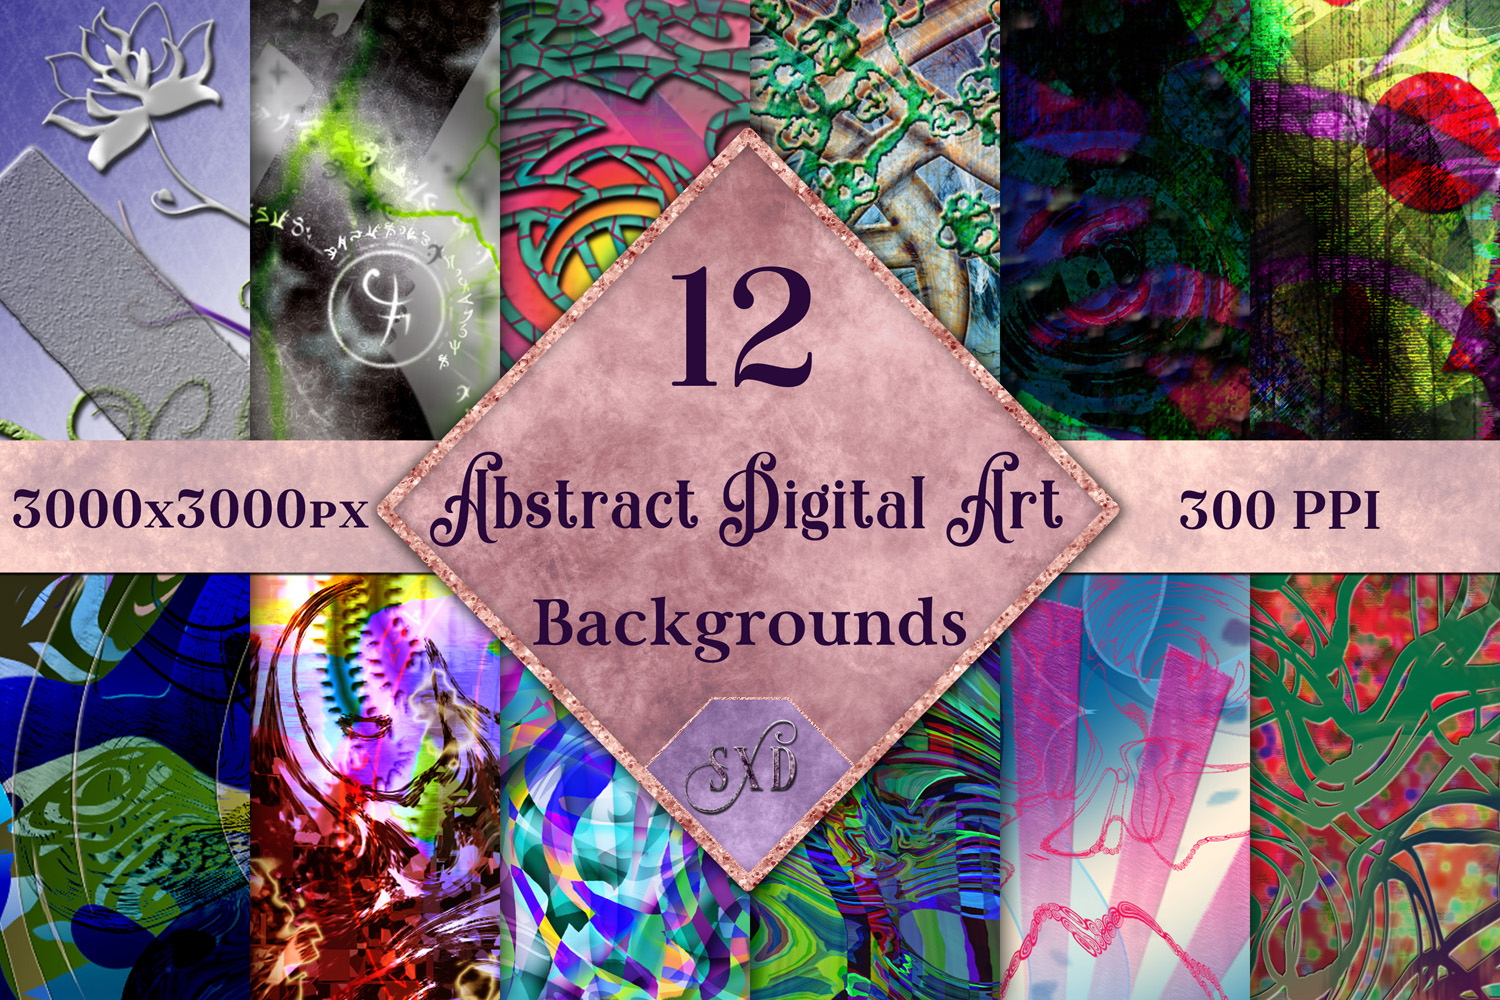 Abstract Digital Art Backgrounds - 12 Image Set example image 1